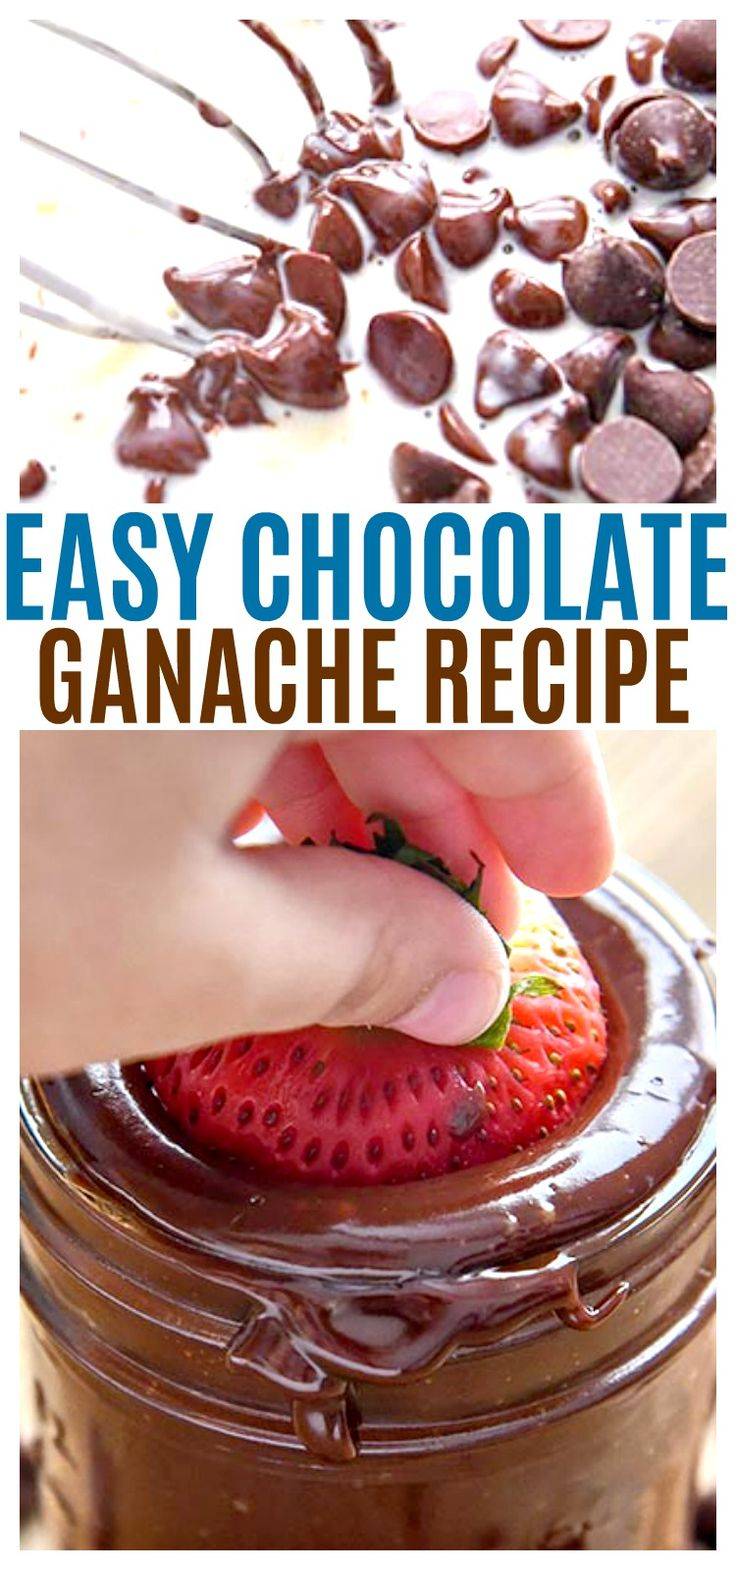 Our Easy Chocolate Ganache recipe can be the perfect fruit dip, chocolate ganache frosting, or even whip it for the best whipped chocolate ganache frosting. So easy to make and eat! Mixing via @CourtneysSweets